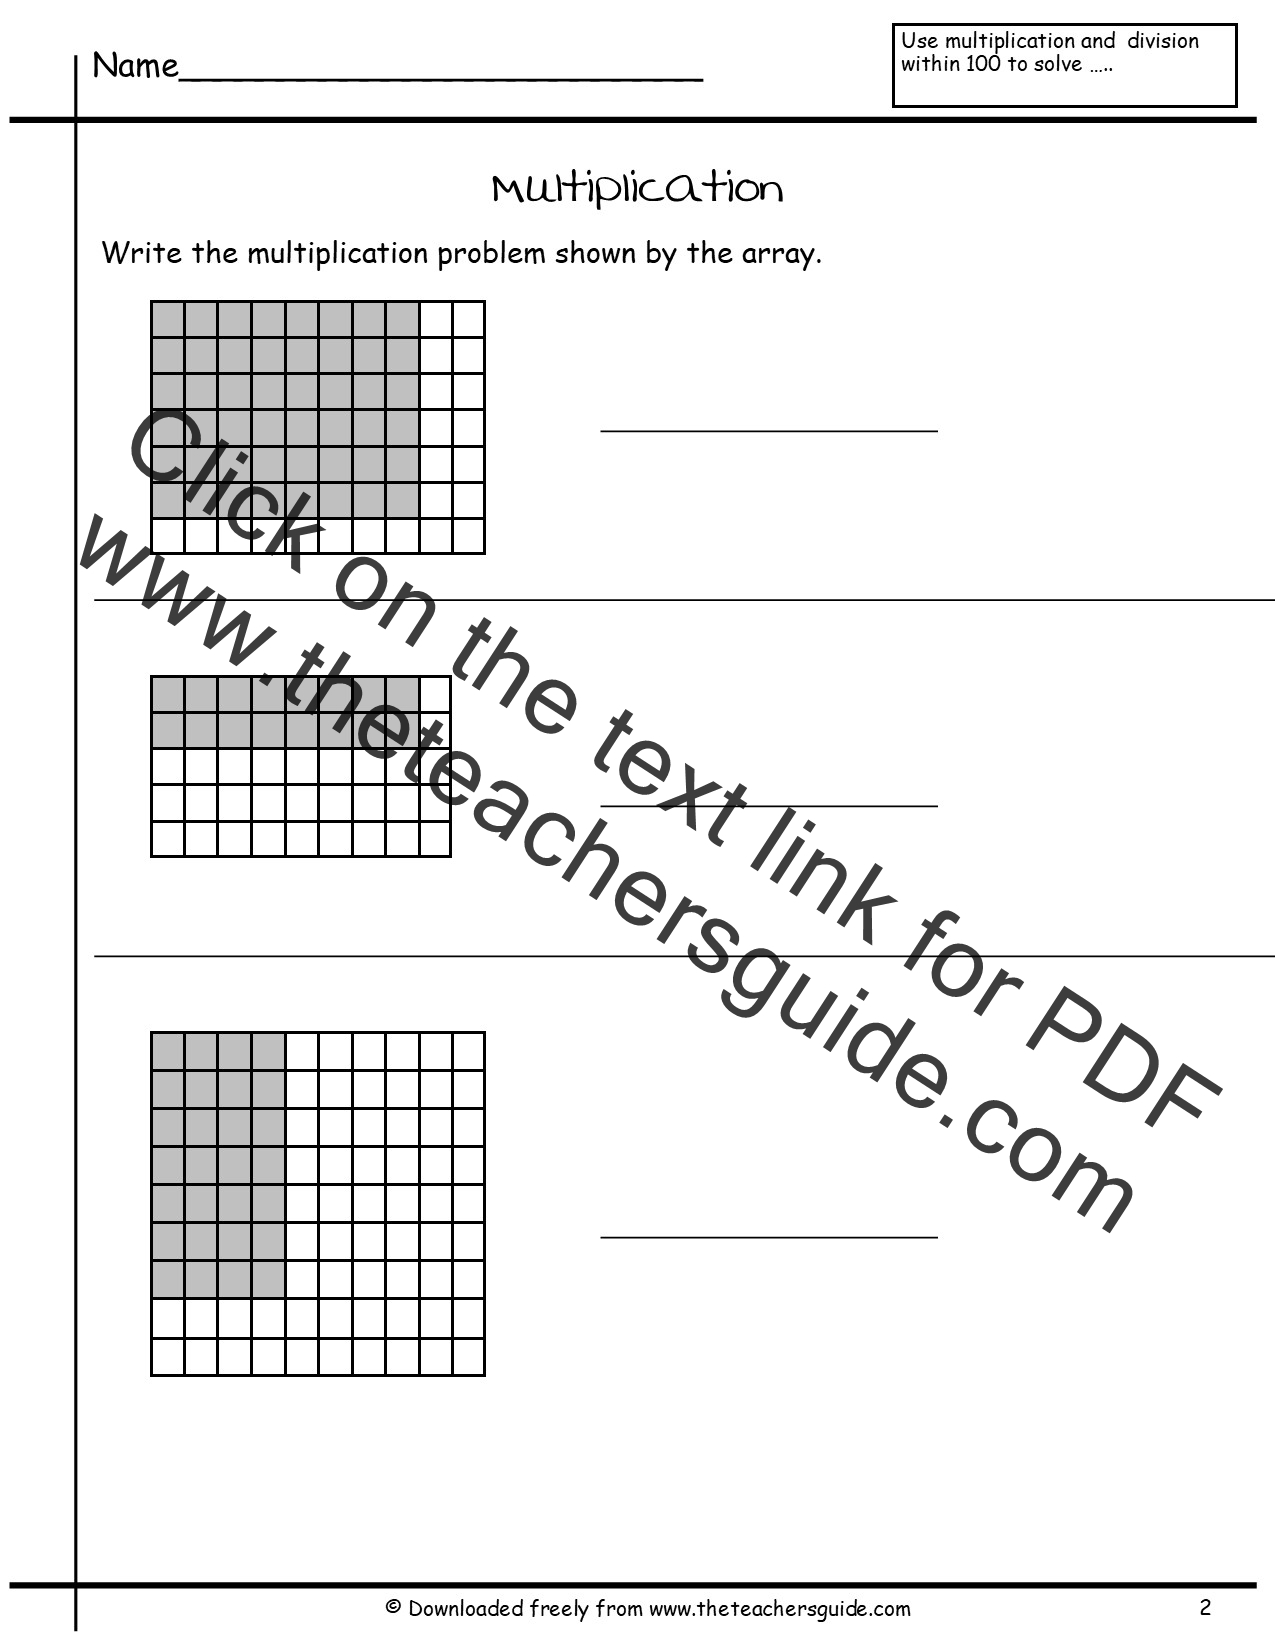 Worksheets Teaching Multiplication Worksheets multiplication array worksheets from the teachers guide worksheets